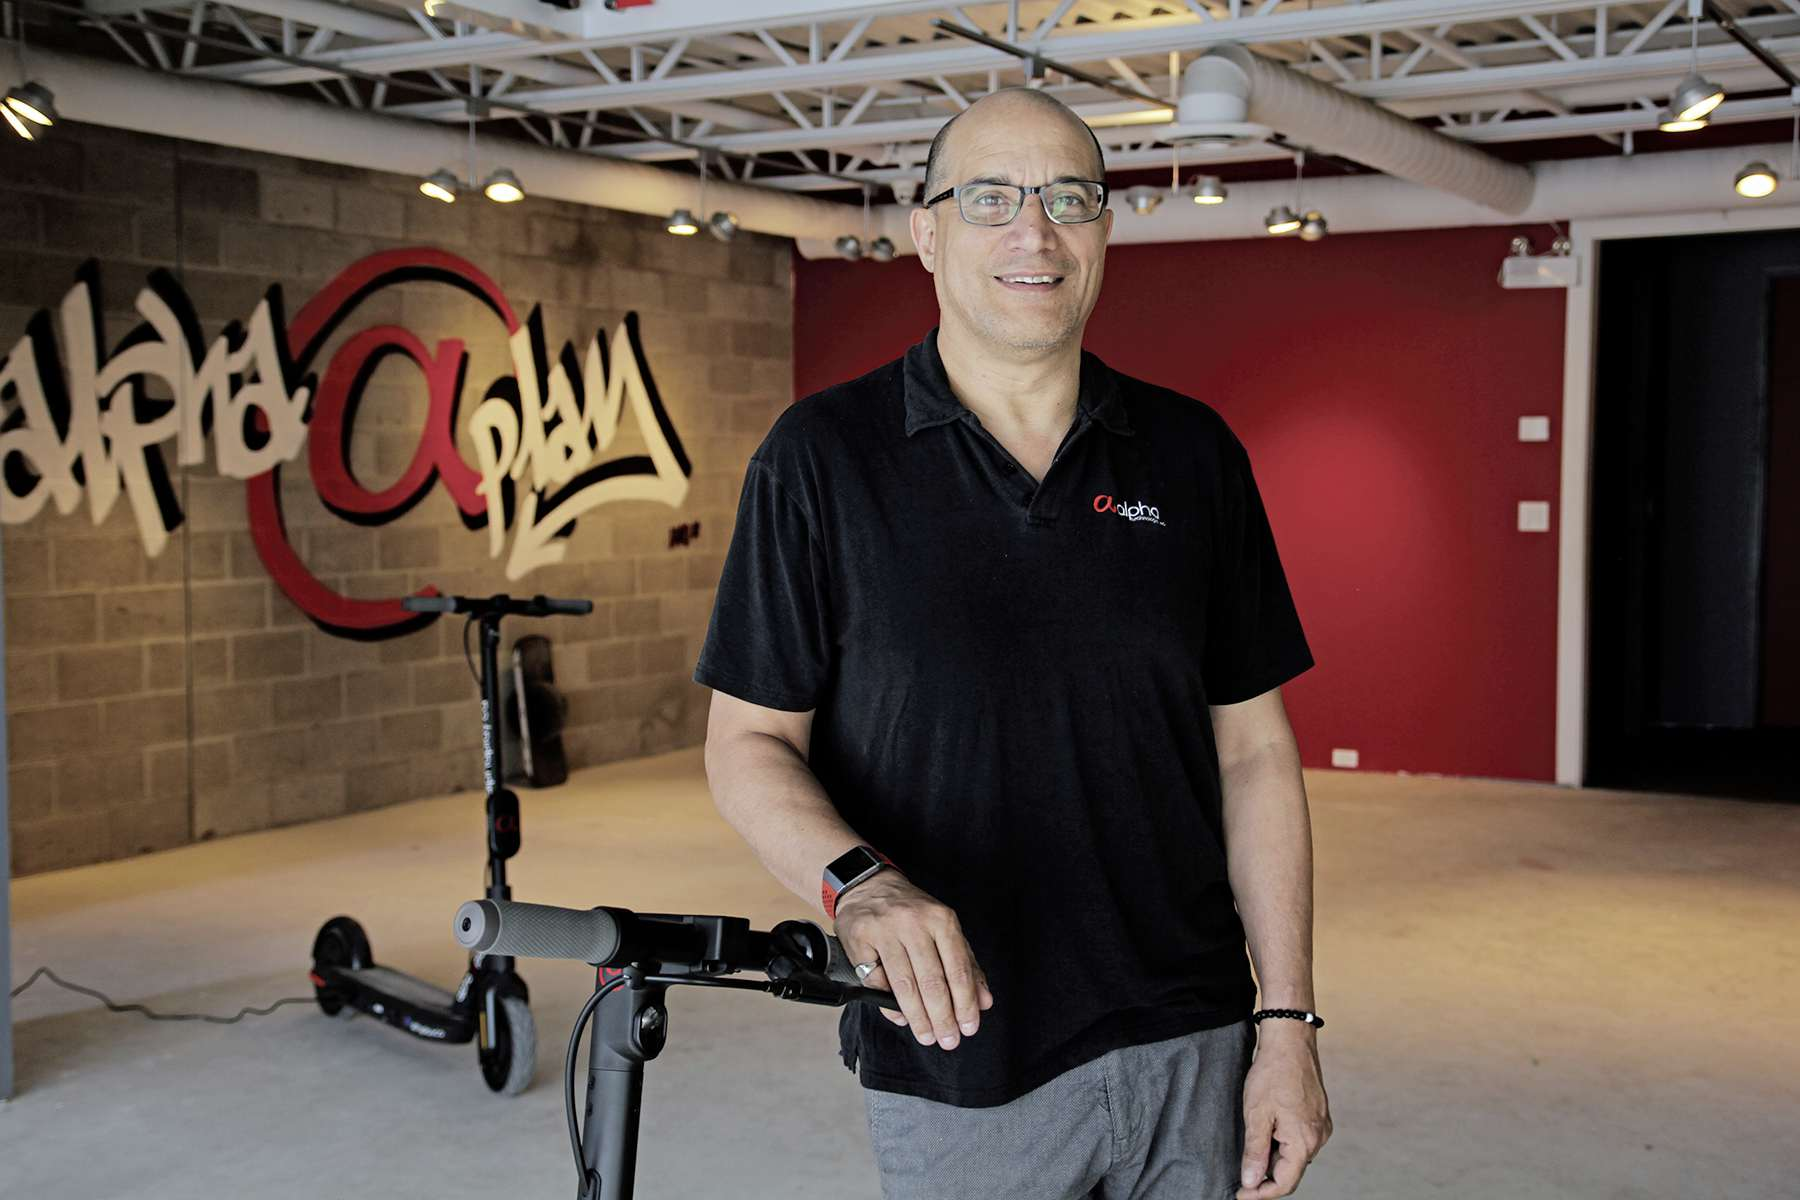 Alan Castell, the owner of Alpha Technologies at 1783 Portage Ave., is launching a storefront called Alpha Play. Customers will be able to shop the showroom and consult with experts on new-to-Manitoba products including 3D printers and accessories, electric scooters and skateboards, and foldable kayaks.